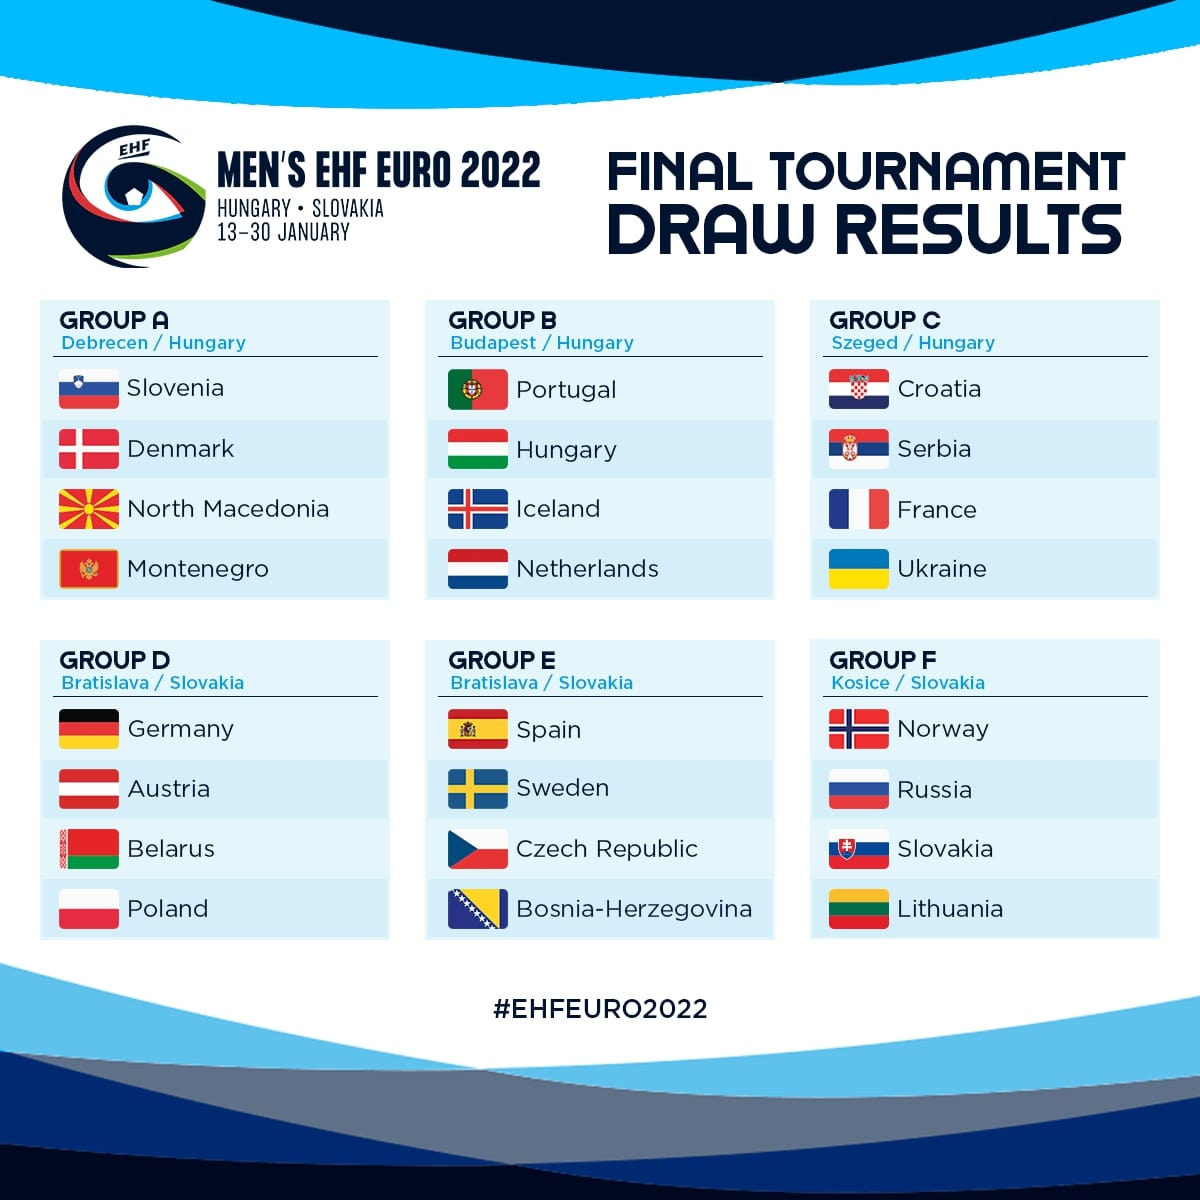 The draw of the EHF EURO 2022